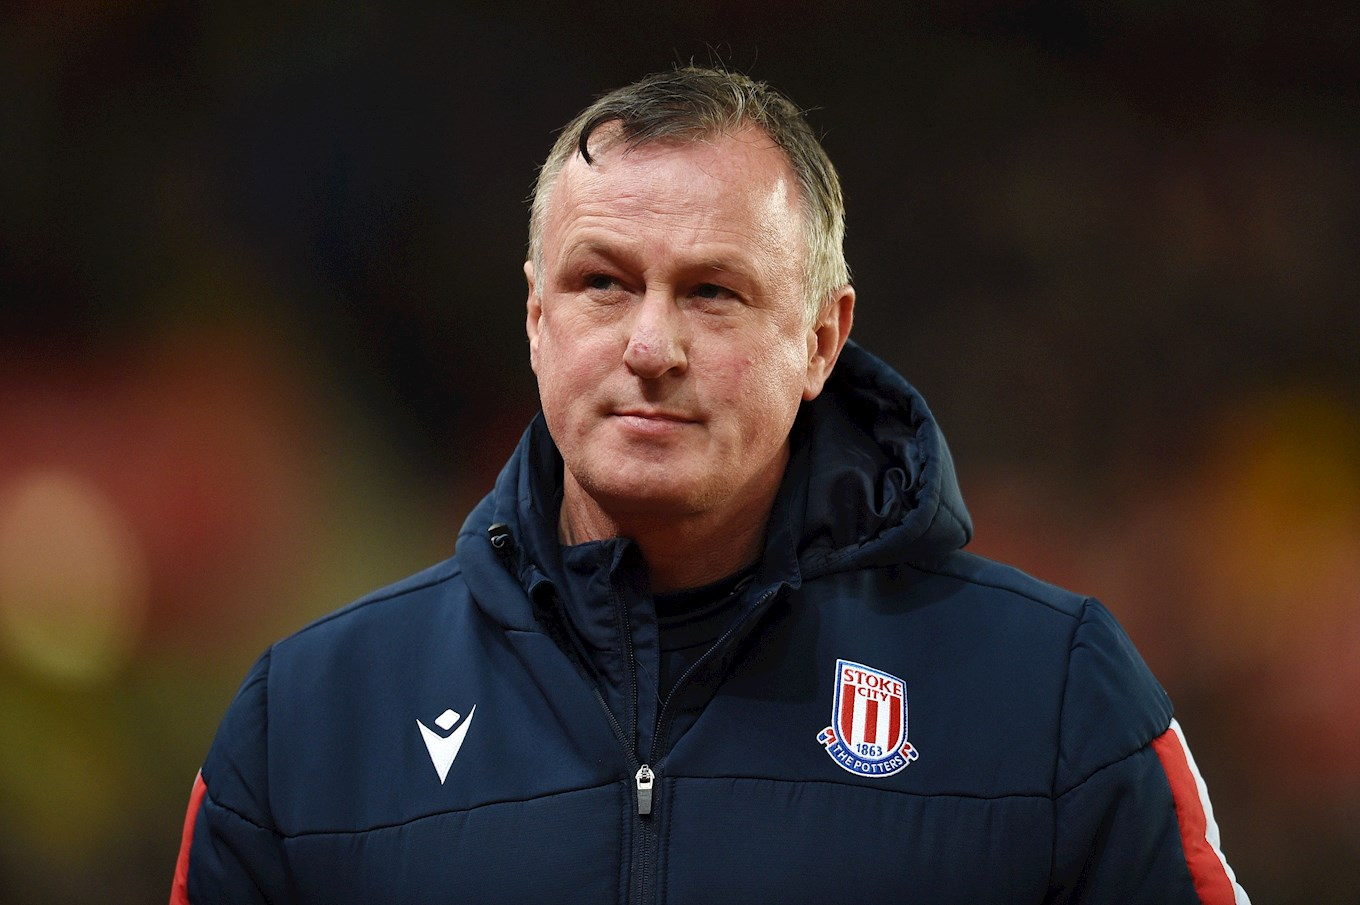 Michael O'Neill - Stoke City manager